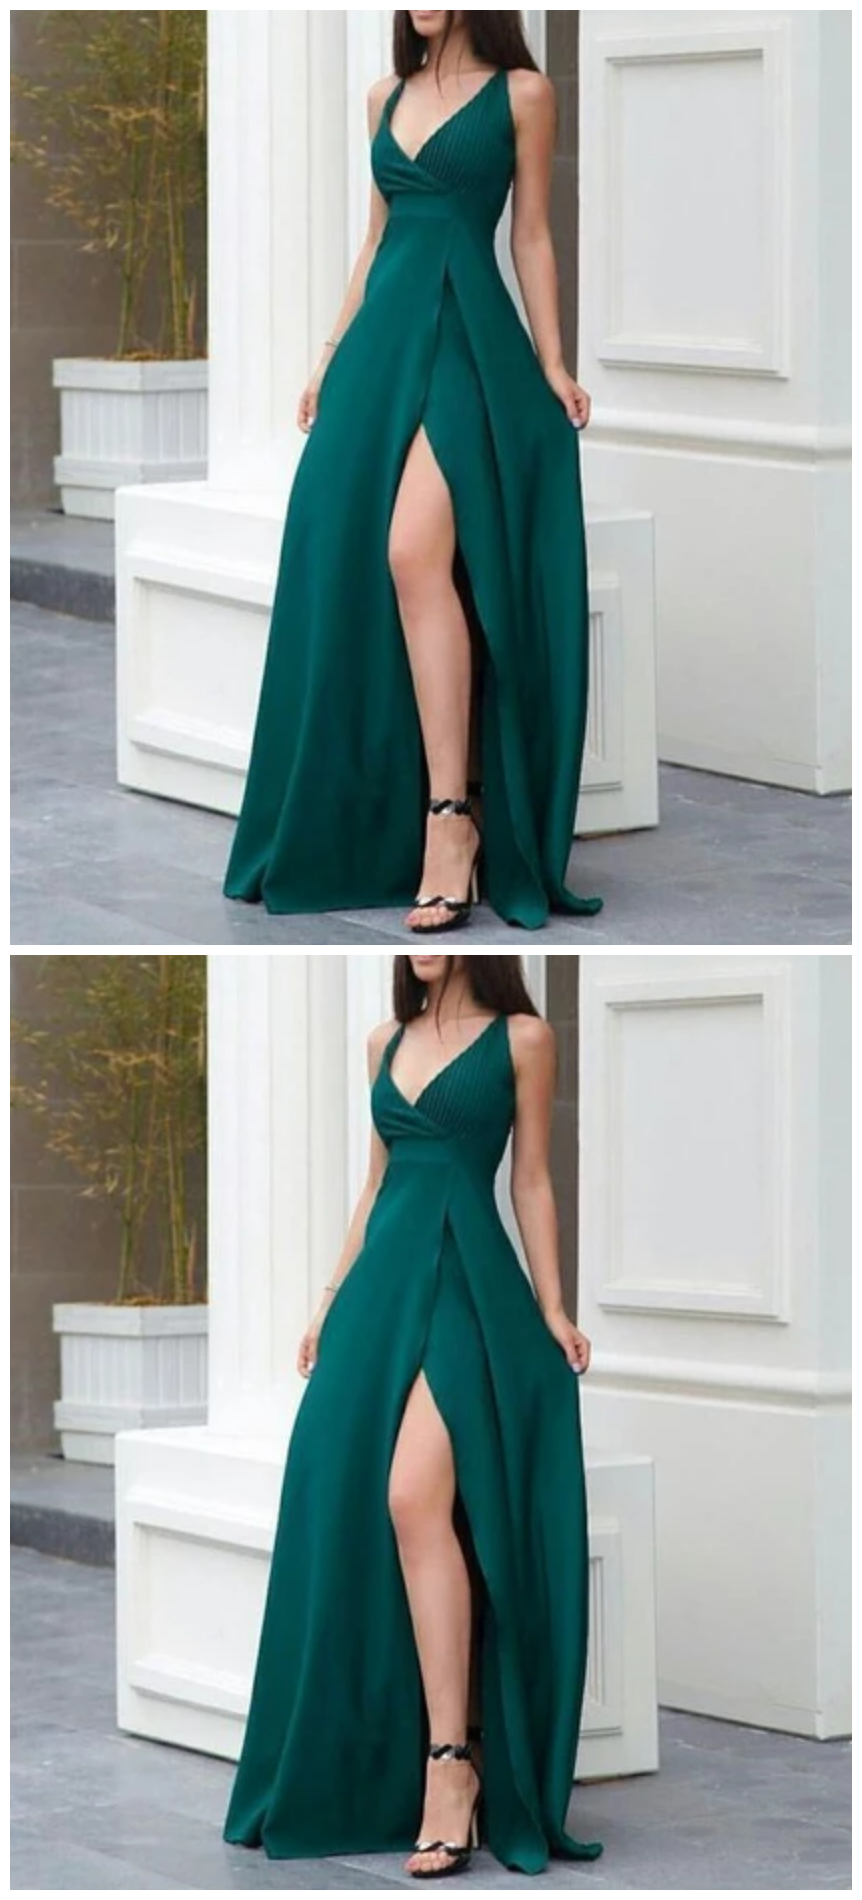 A Line Green Prom Dress With Side Slit - Green prom dress, Long green dress, Classy gowns, Classy prom dresses, Work party dress, Red dresses classy - A line green prom dress with side slitA beautiful dress that brings plenty of shine, turn the wow factor all the way up in this custom made sparkly beaded sweetheart neckline chiffon homecoming dress  This gorgeous dress with a sweetheart neckline accentuates your bust line and the bodice is adorned with dazzling beading that shines from every angle  To soften the look, the chiffon skirt lends a f